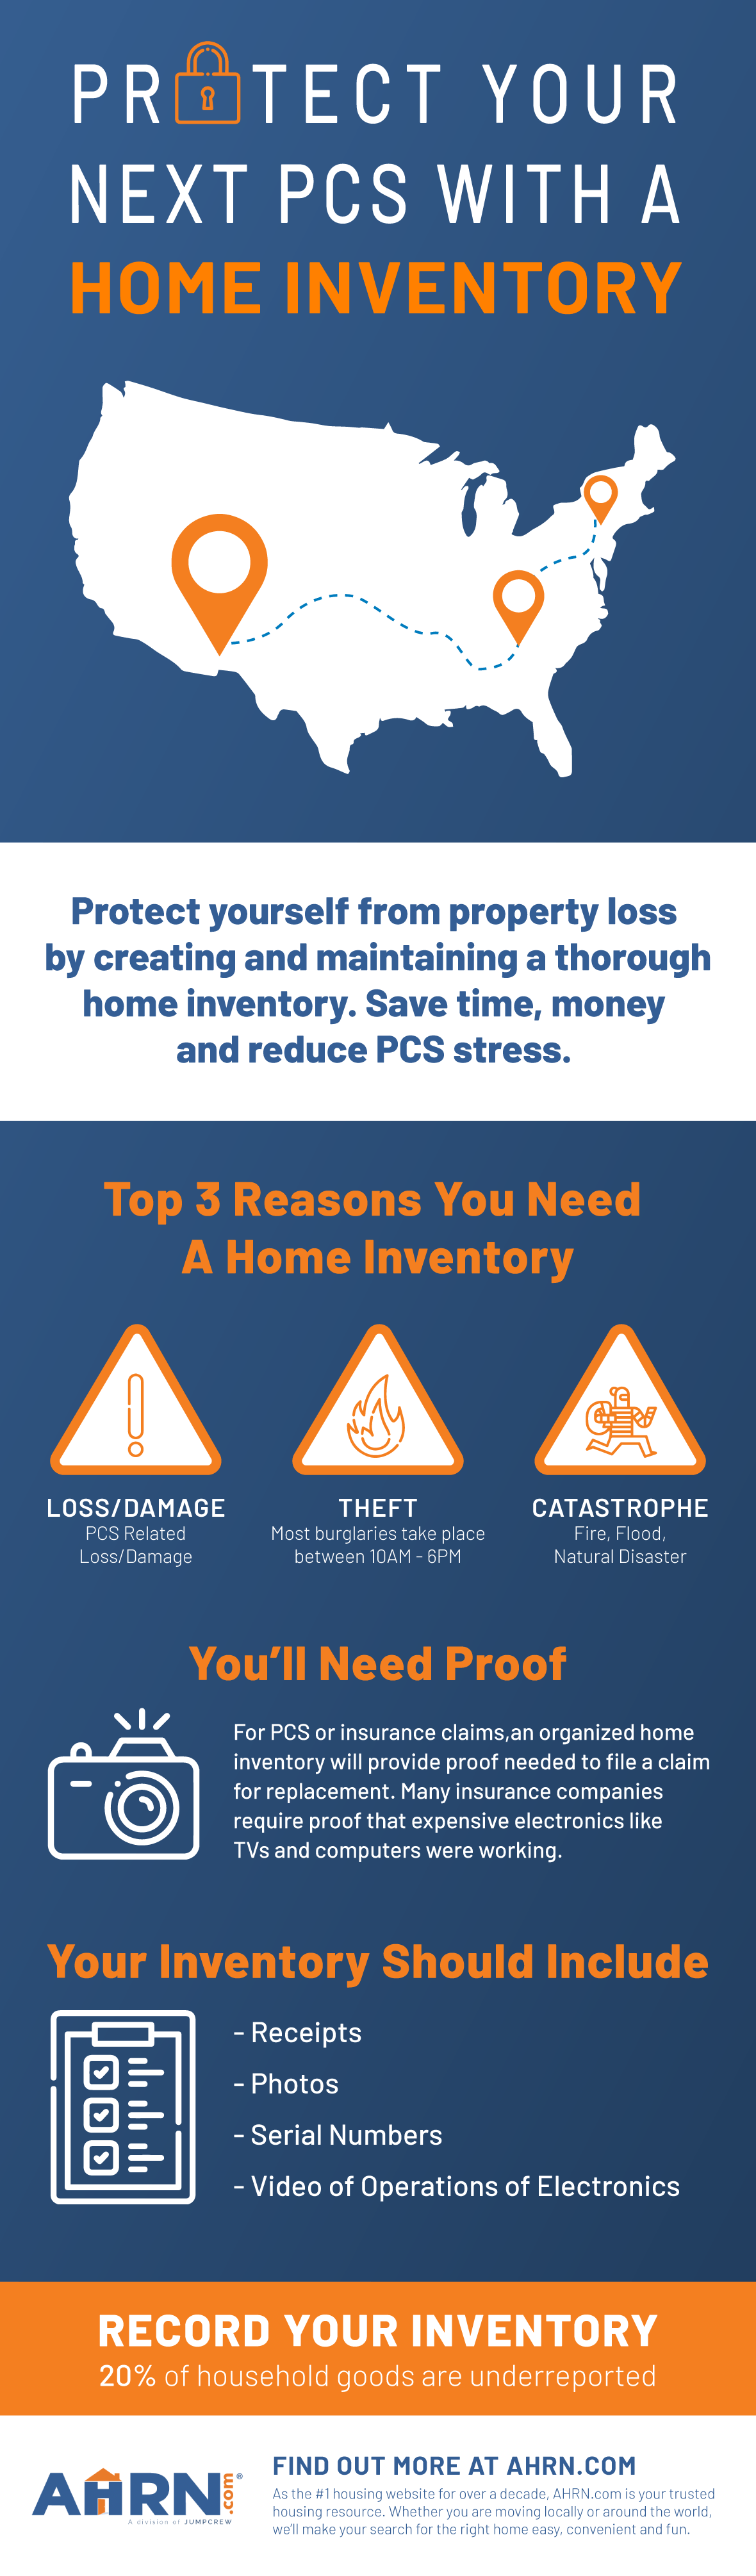 Home Inventory infographic